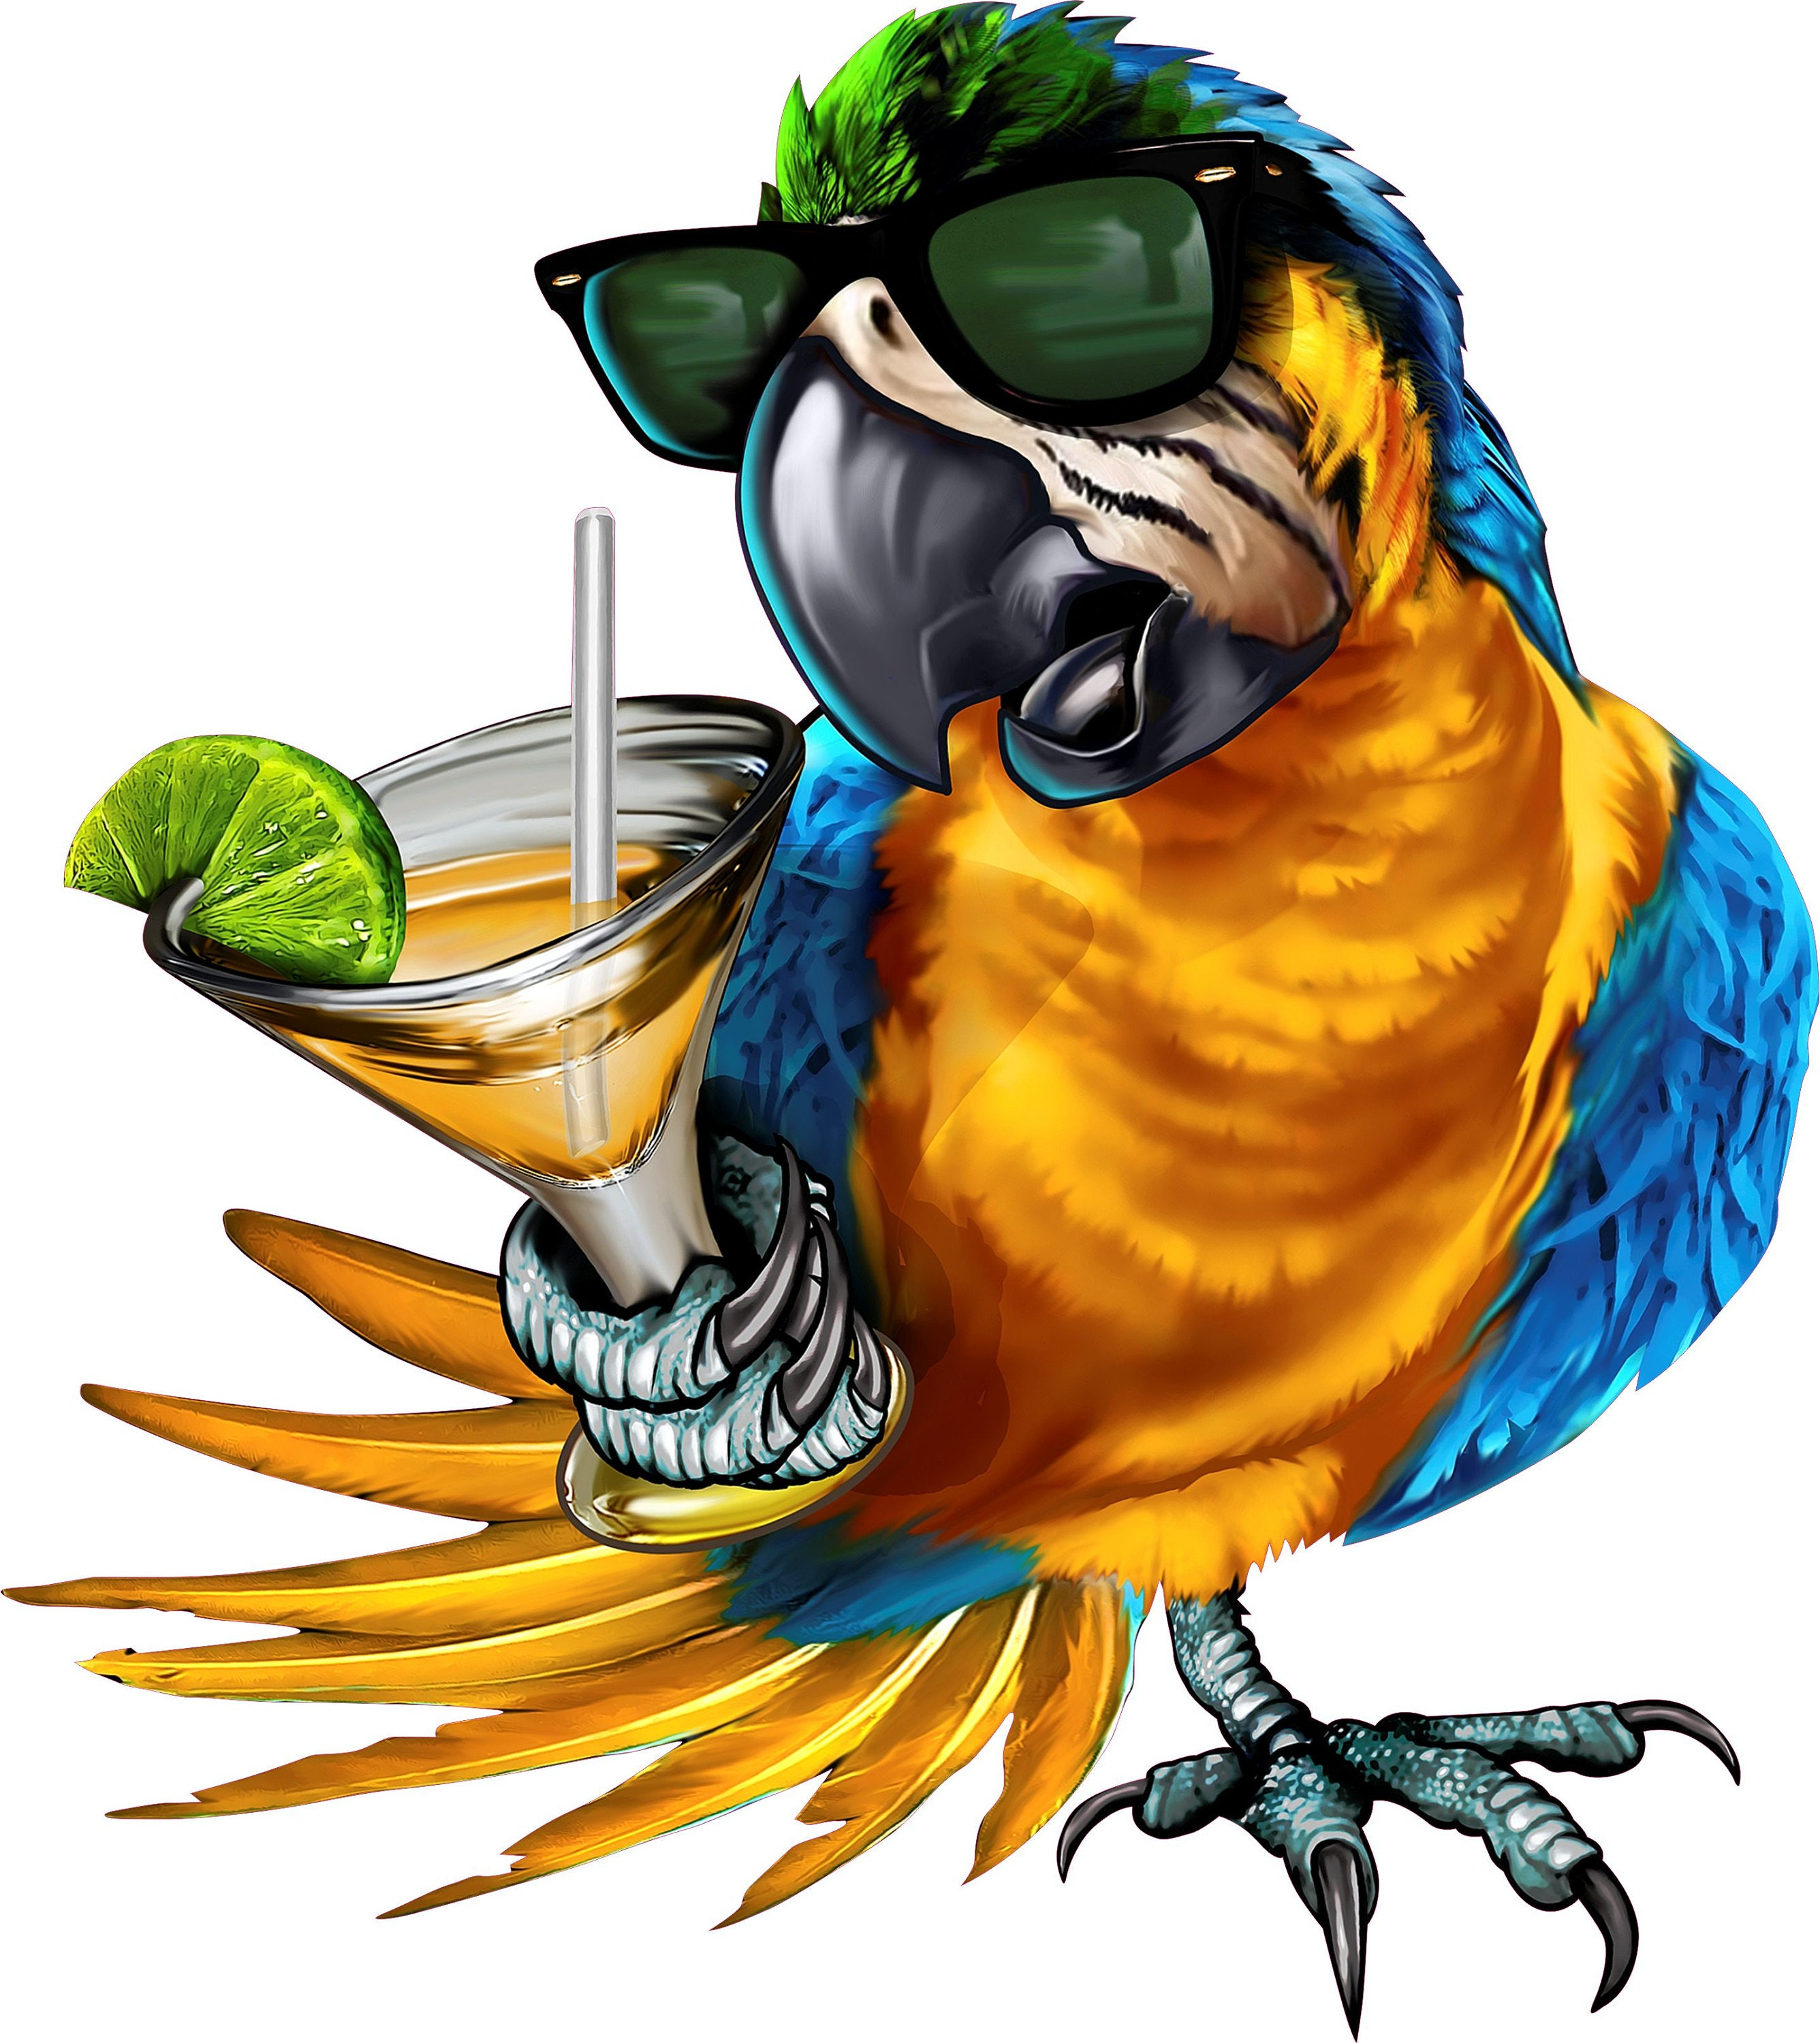 drinking parrot decal full color parrot with sunglasses clip art martini glass for birthday clip art martini glass for birthday